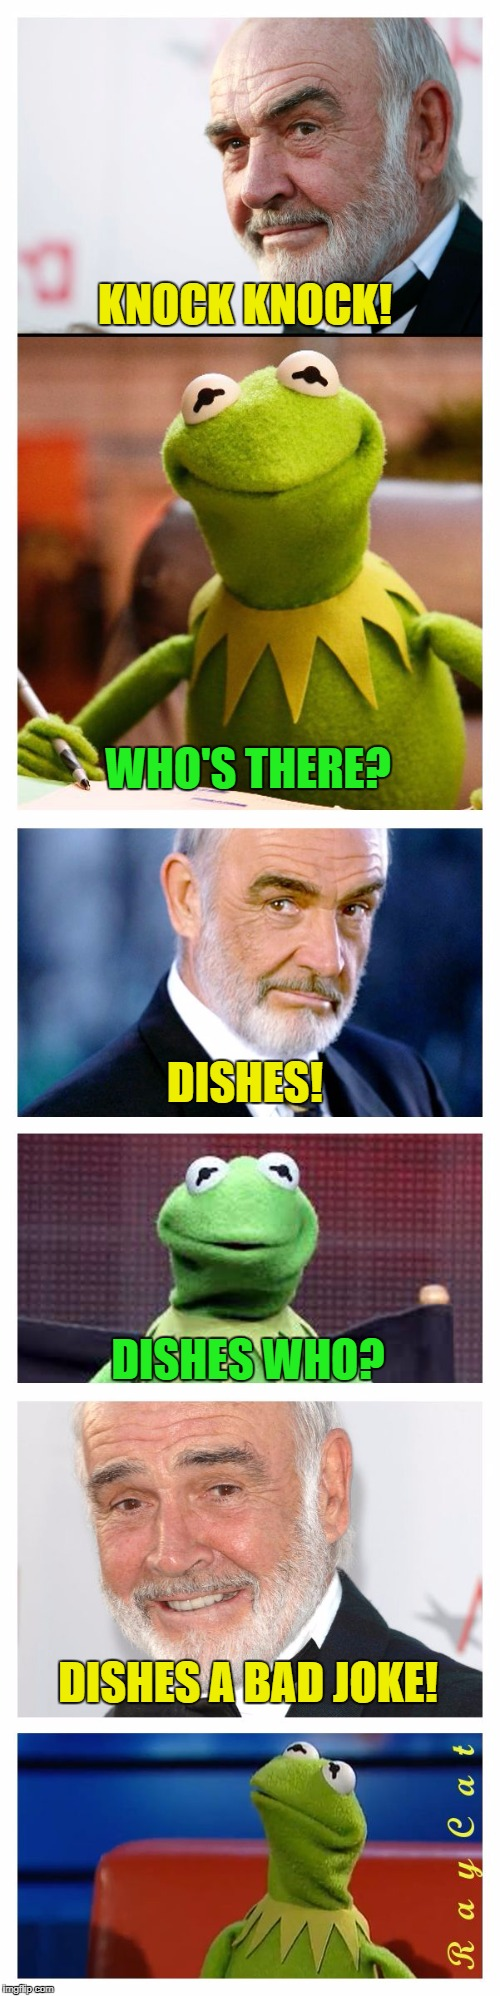 Sean and Kermit | KNOCK KNOCK! WHO'S THERE? DISHES! DISHES WHO? DISHES A BAD JOKE! | image tagged in sean and kermit,memes,sean connery  kermit | made w/ Imgflip meme maker